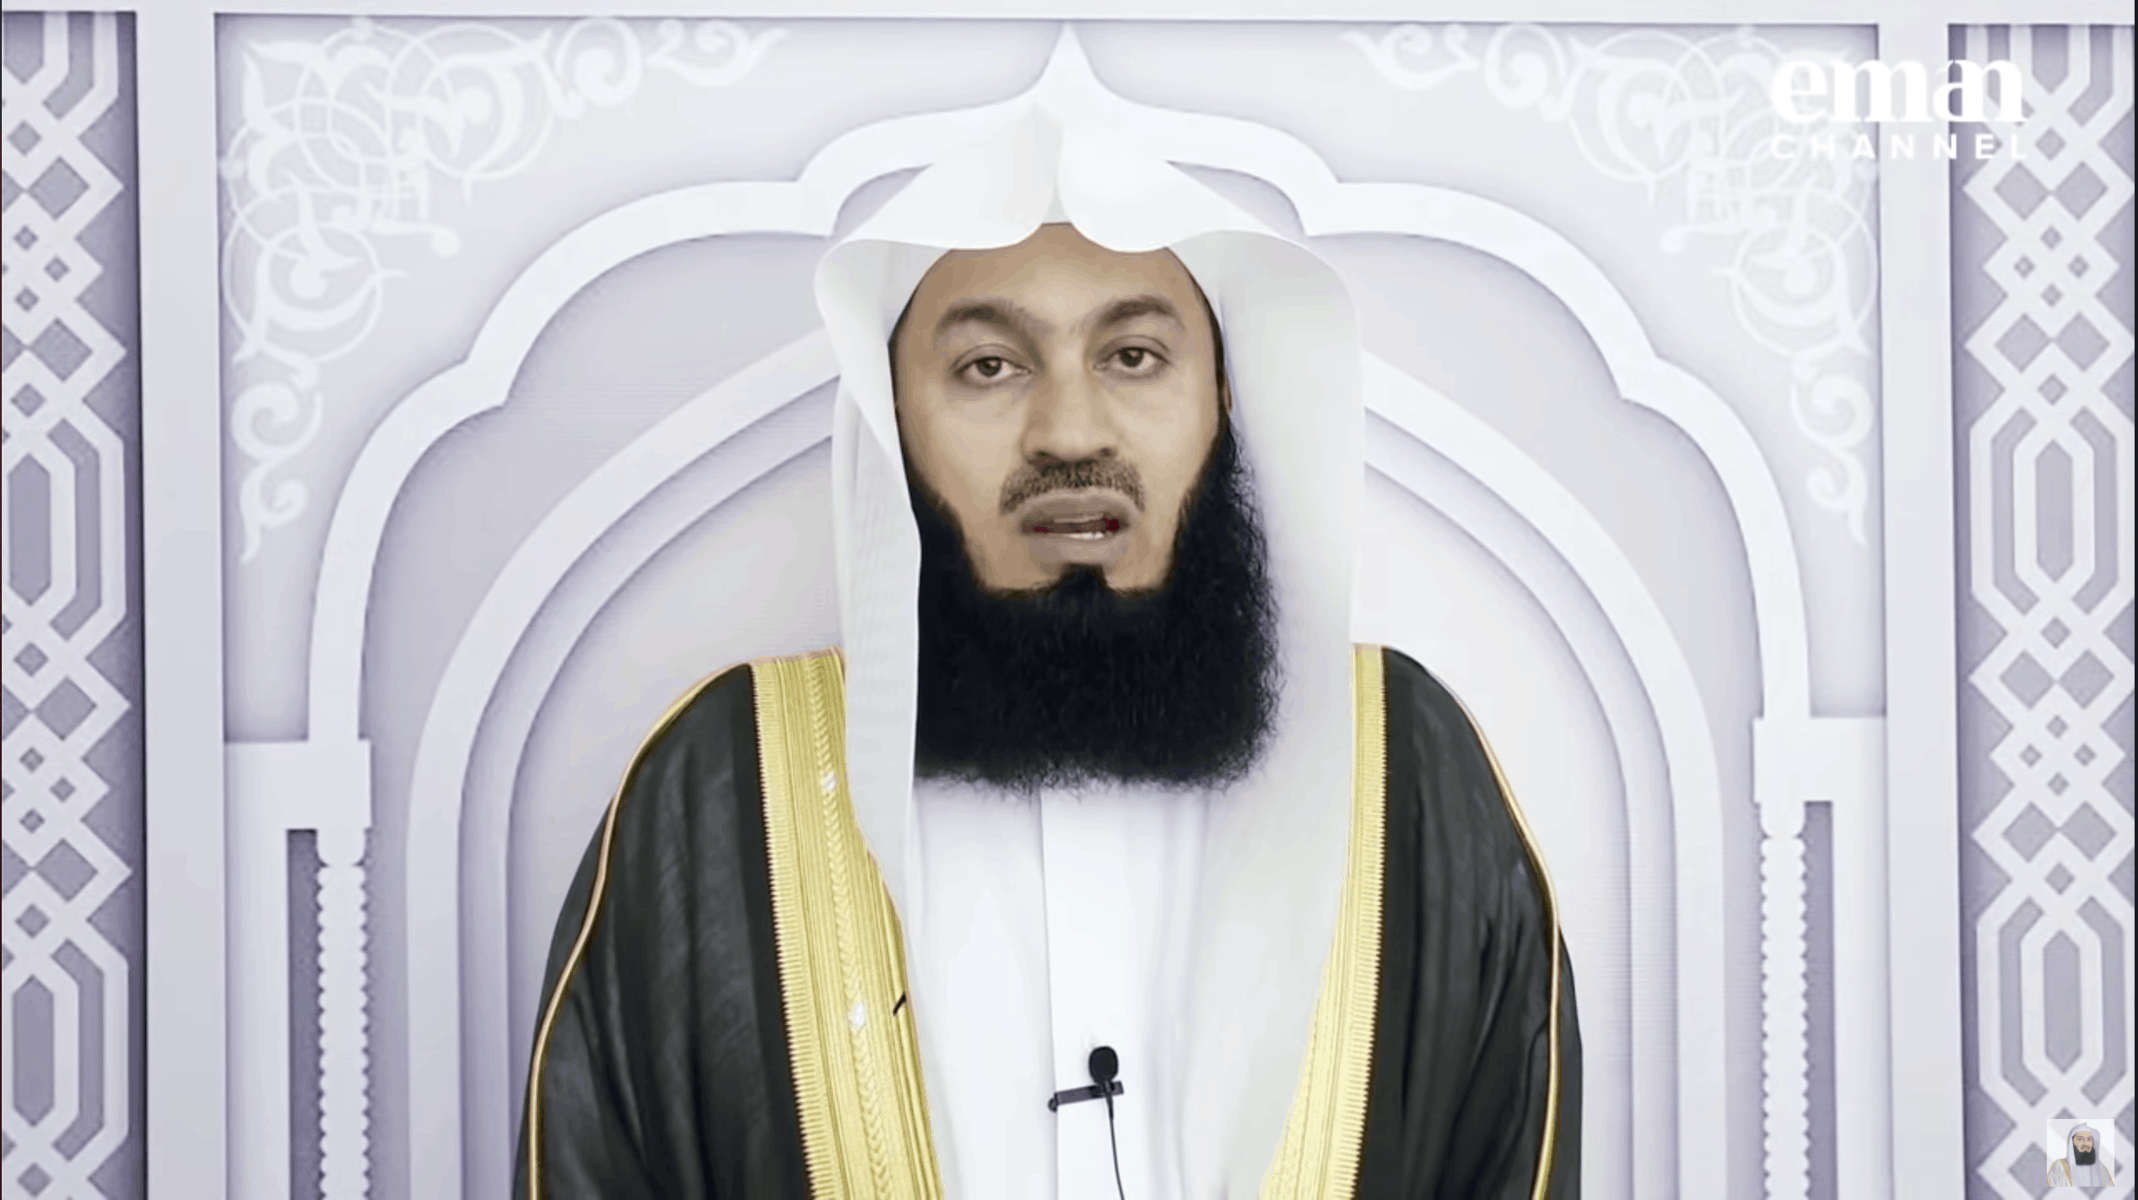 Ismail ibn Musa Menk – Preparing for a Good Death